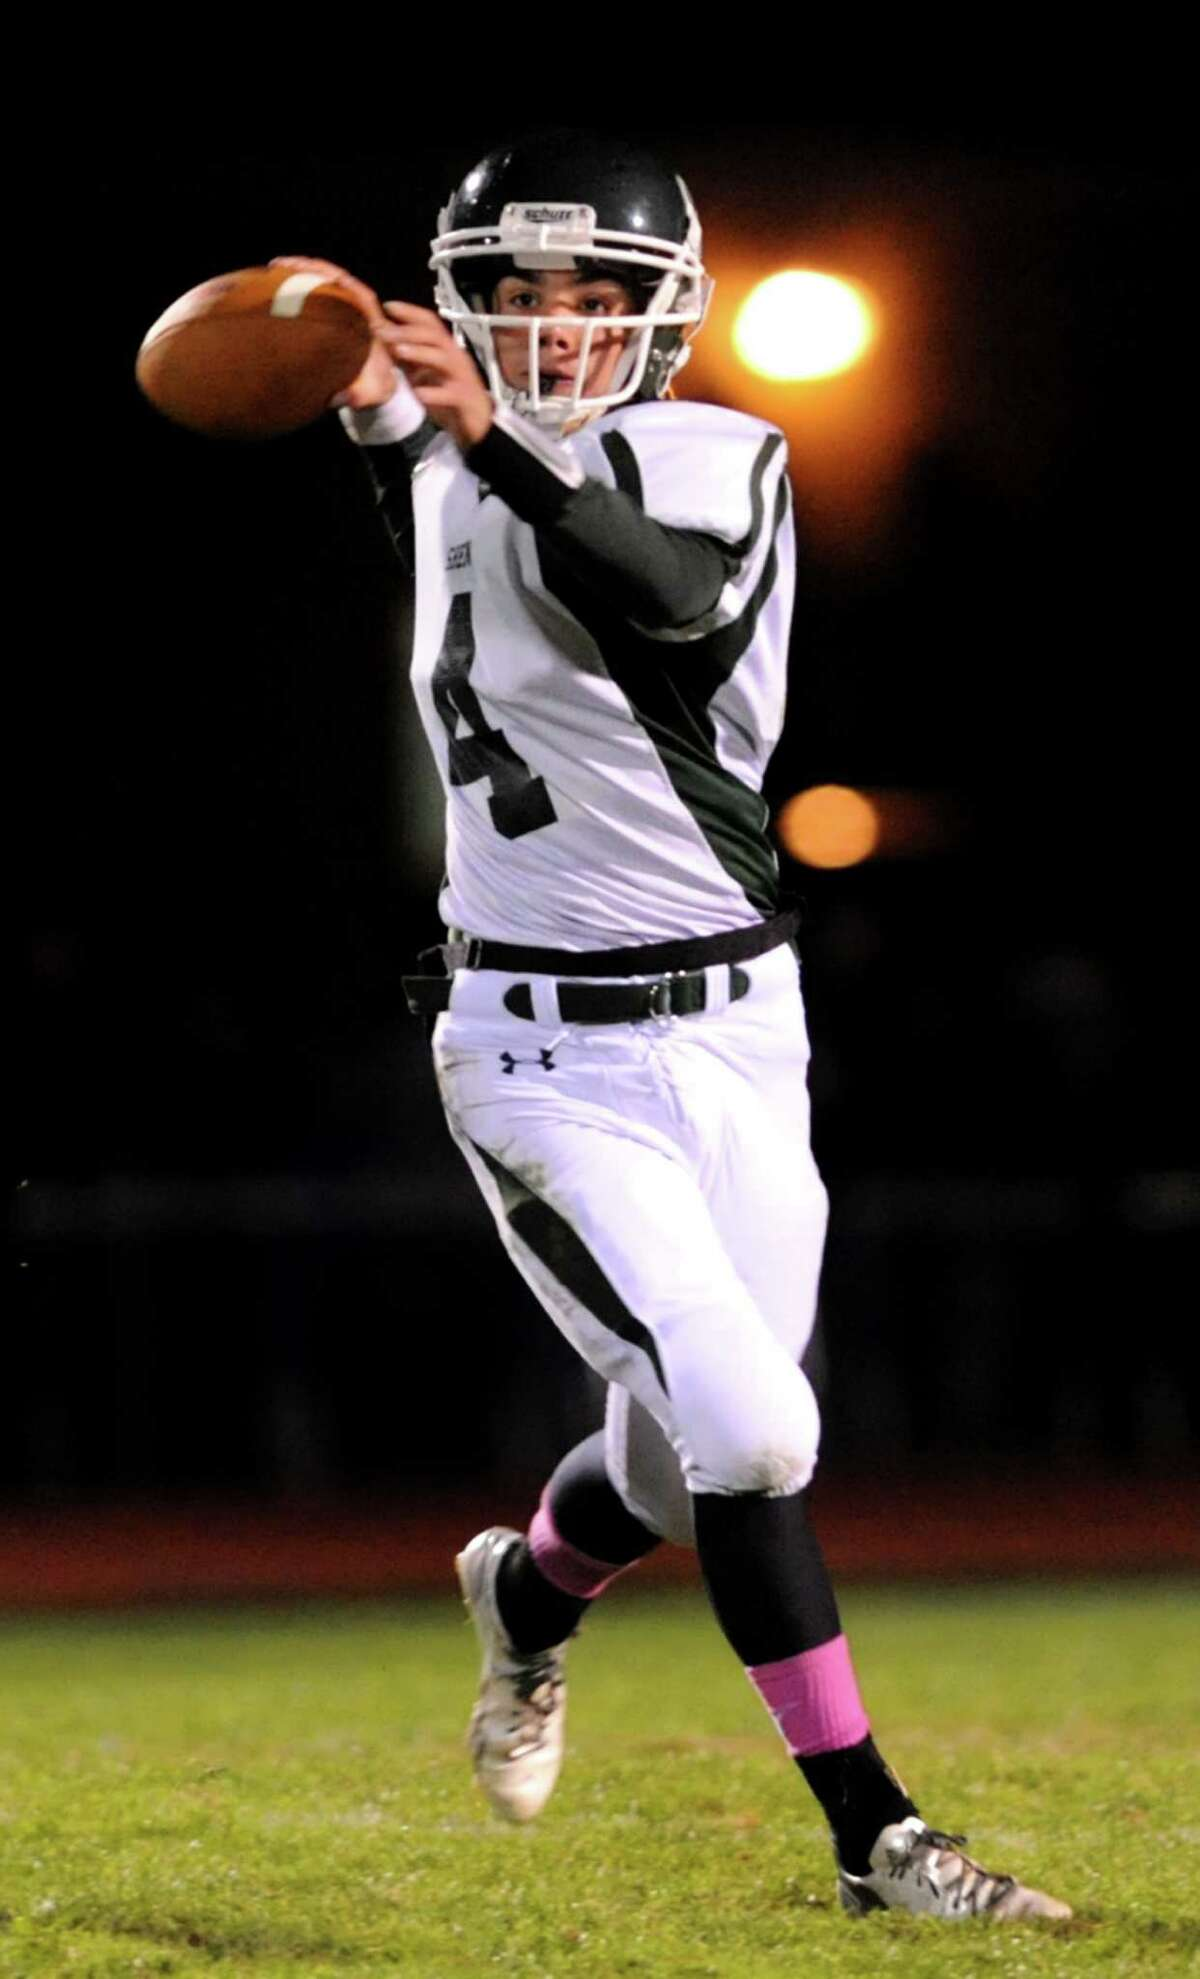 Shenendehowa's quarterback Ben Sibson draws back to pass during their Class AA quarterfinal football game against Shaker on Friday, Oct. 25, 2013, at Shaker High in Latham, N.Y. (Cindy Schultz / Times Union)